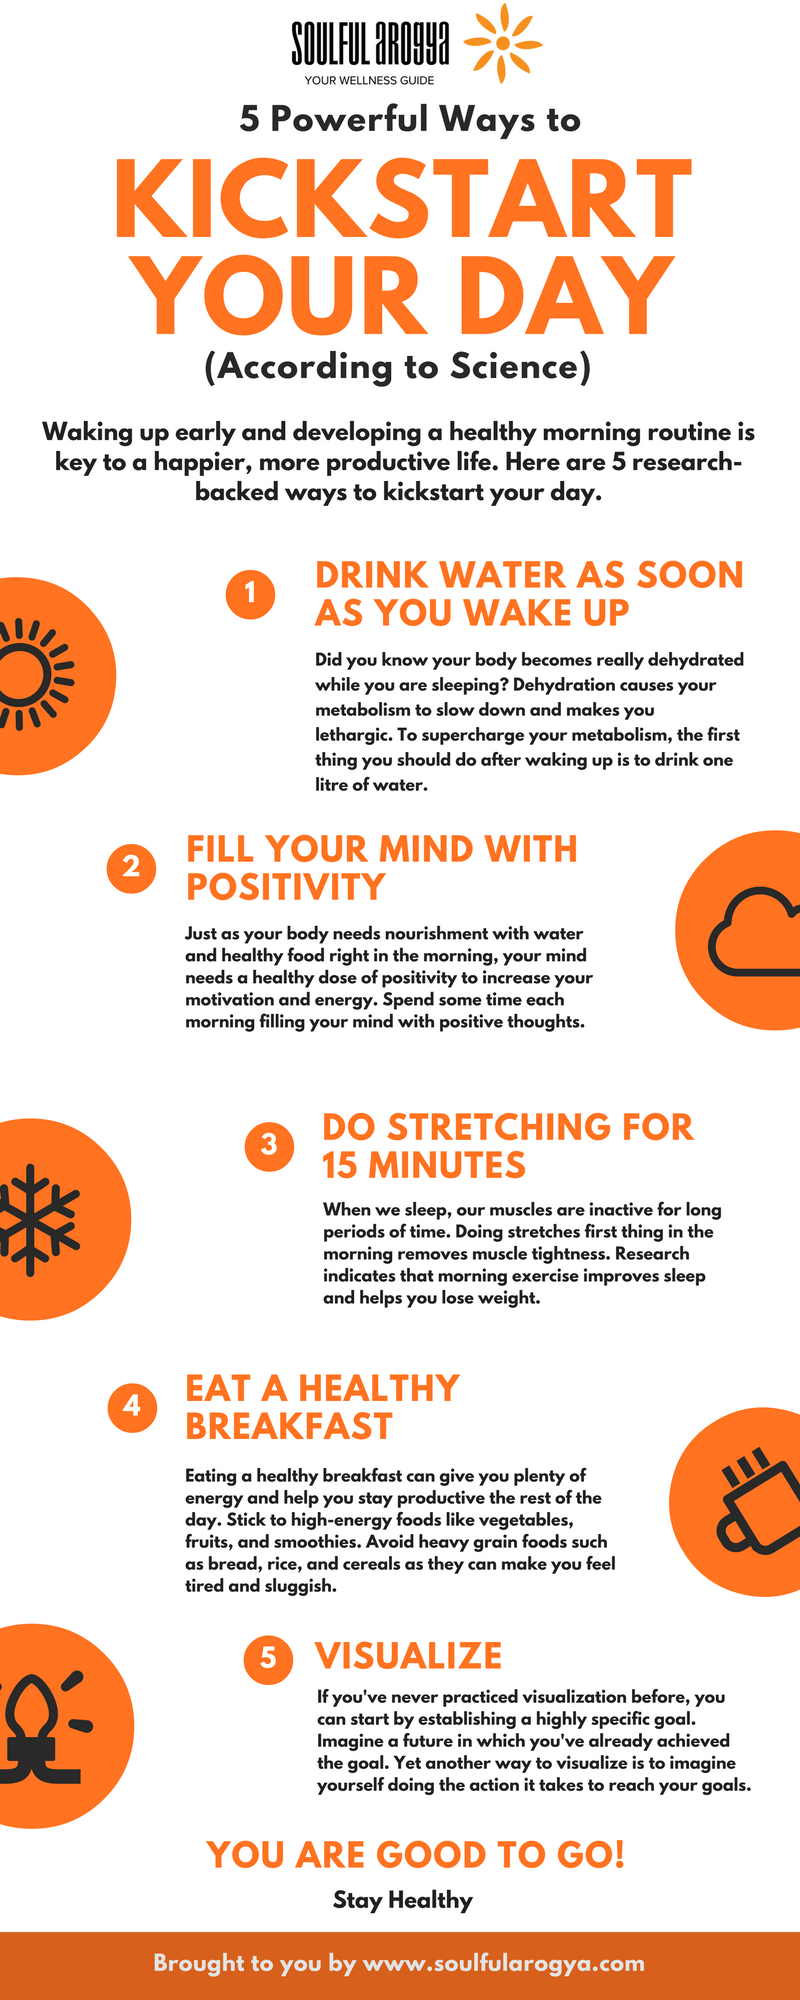 5 Powerful Ways to Kickstart Your Day [Infographic]